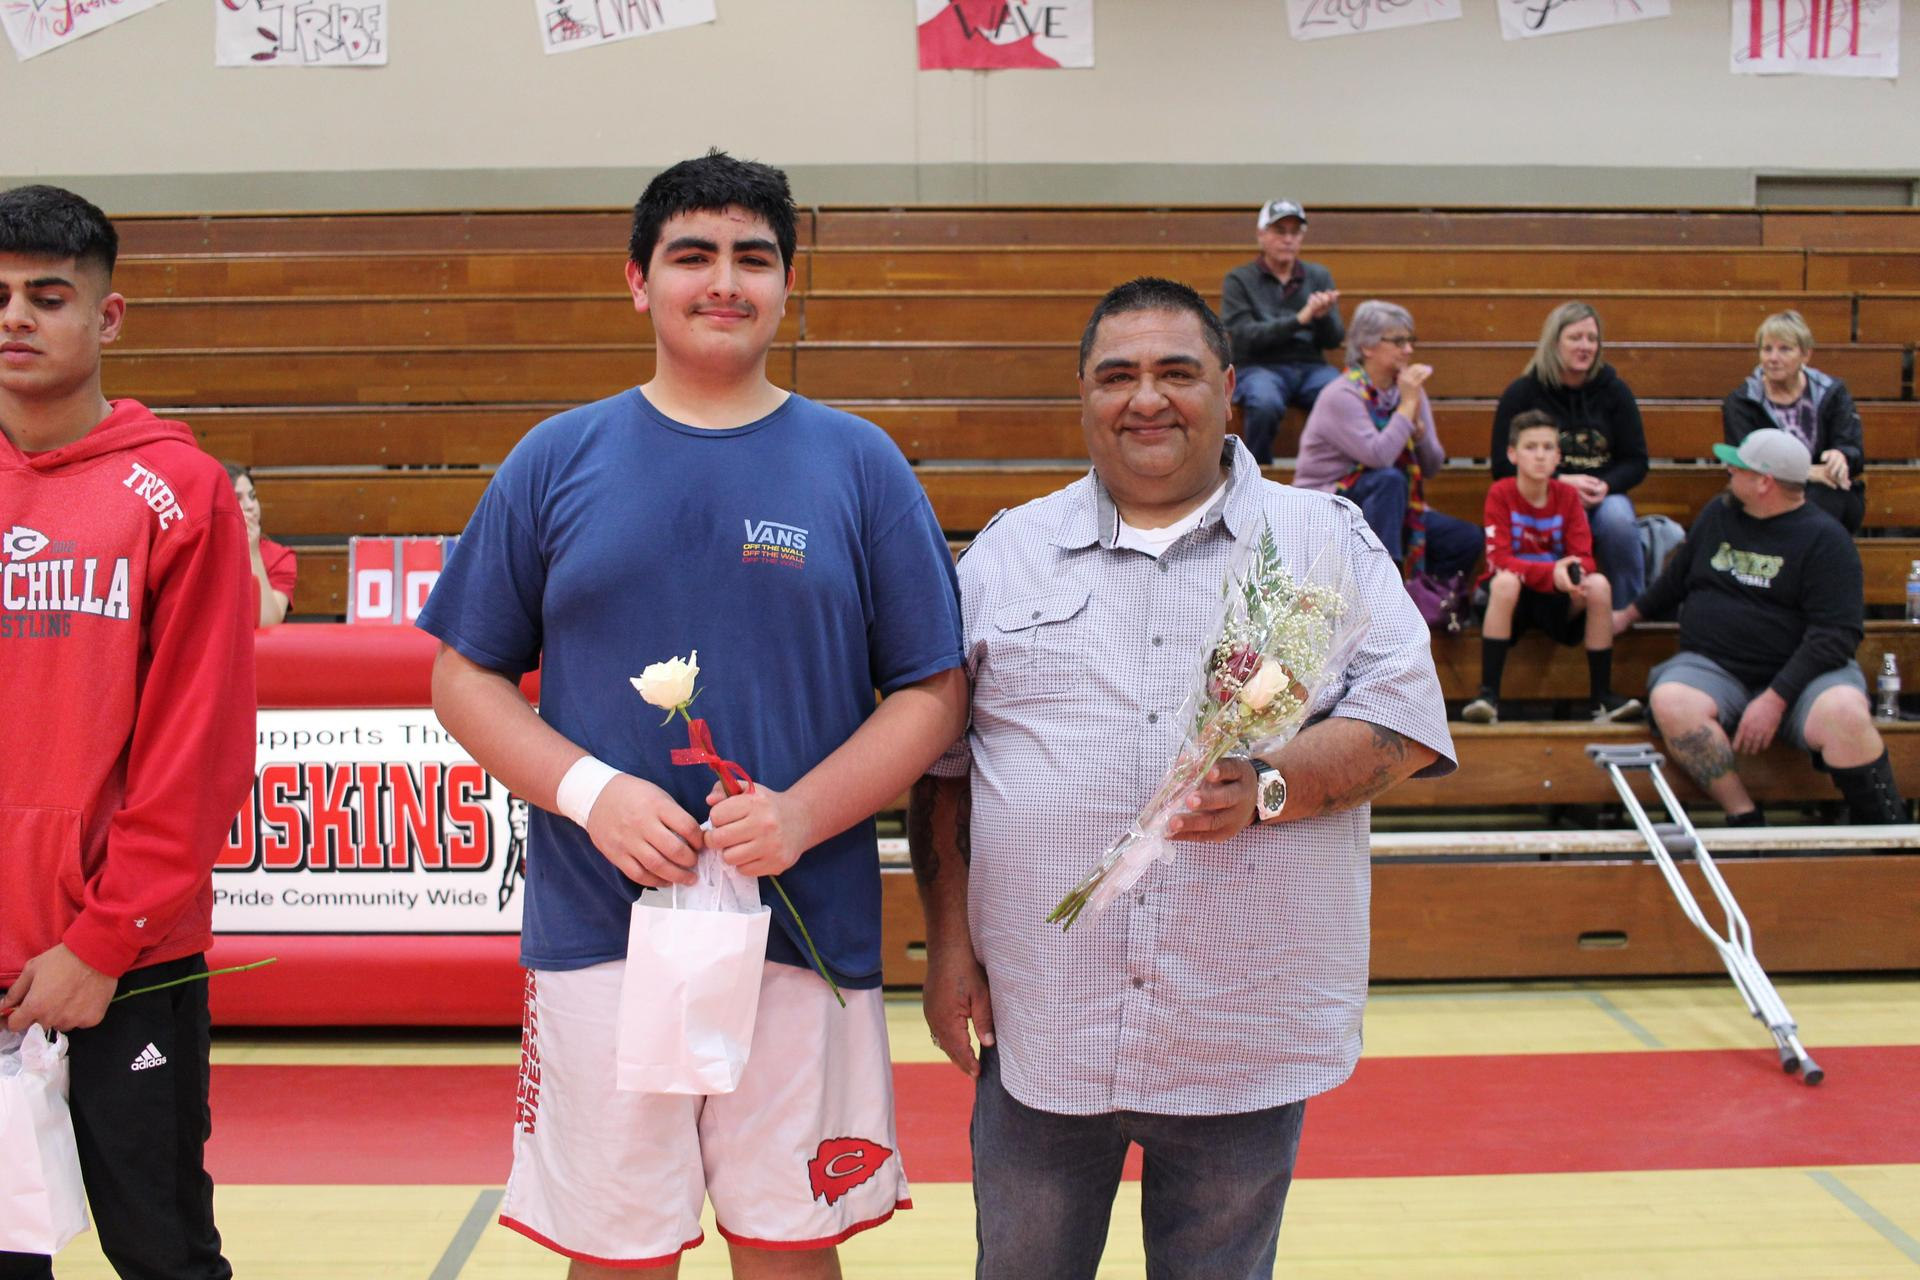 Wrestlers with their Family